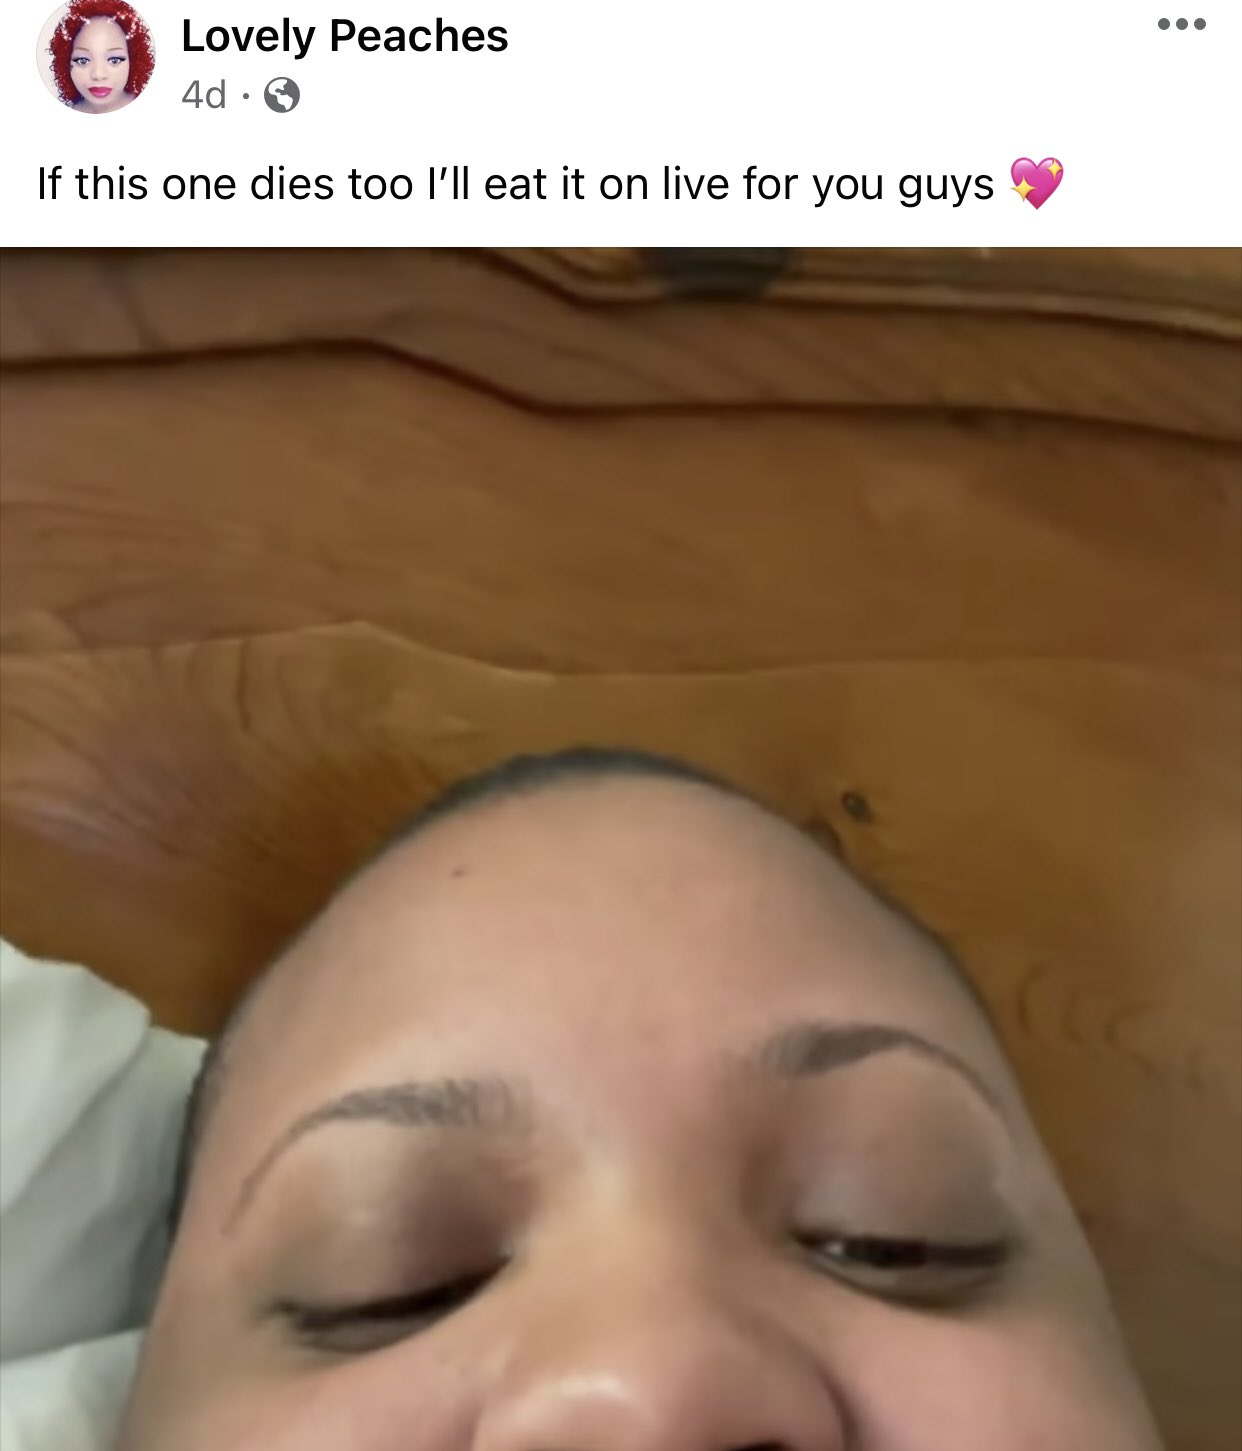 Lovely Peaches threatens to eat her dog if it passes away.